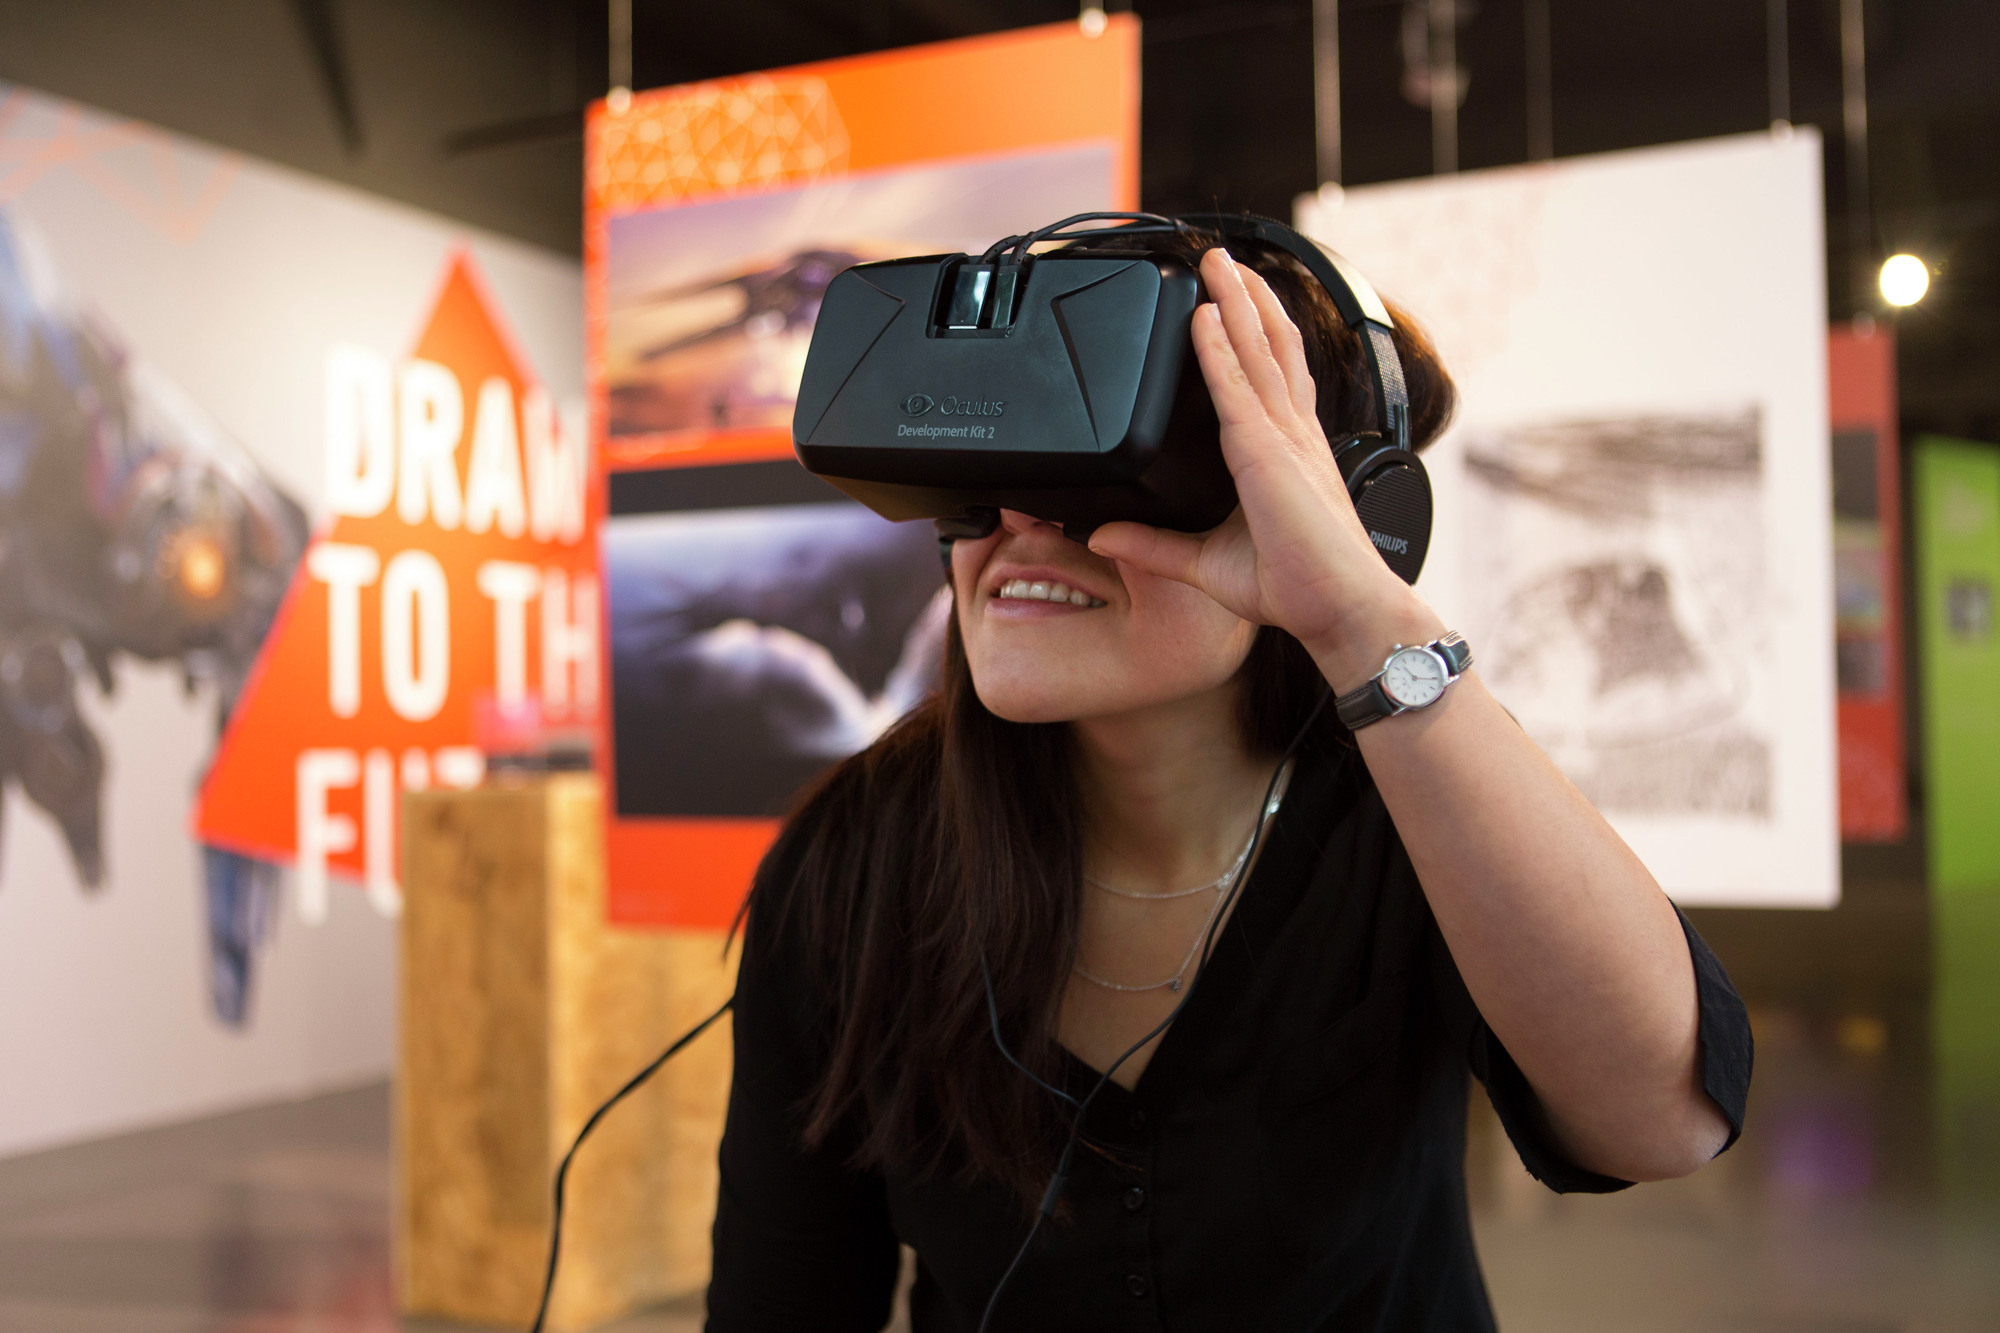 D Virtual Reality Exhibition : Gallery of exhibition drawn to the future